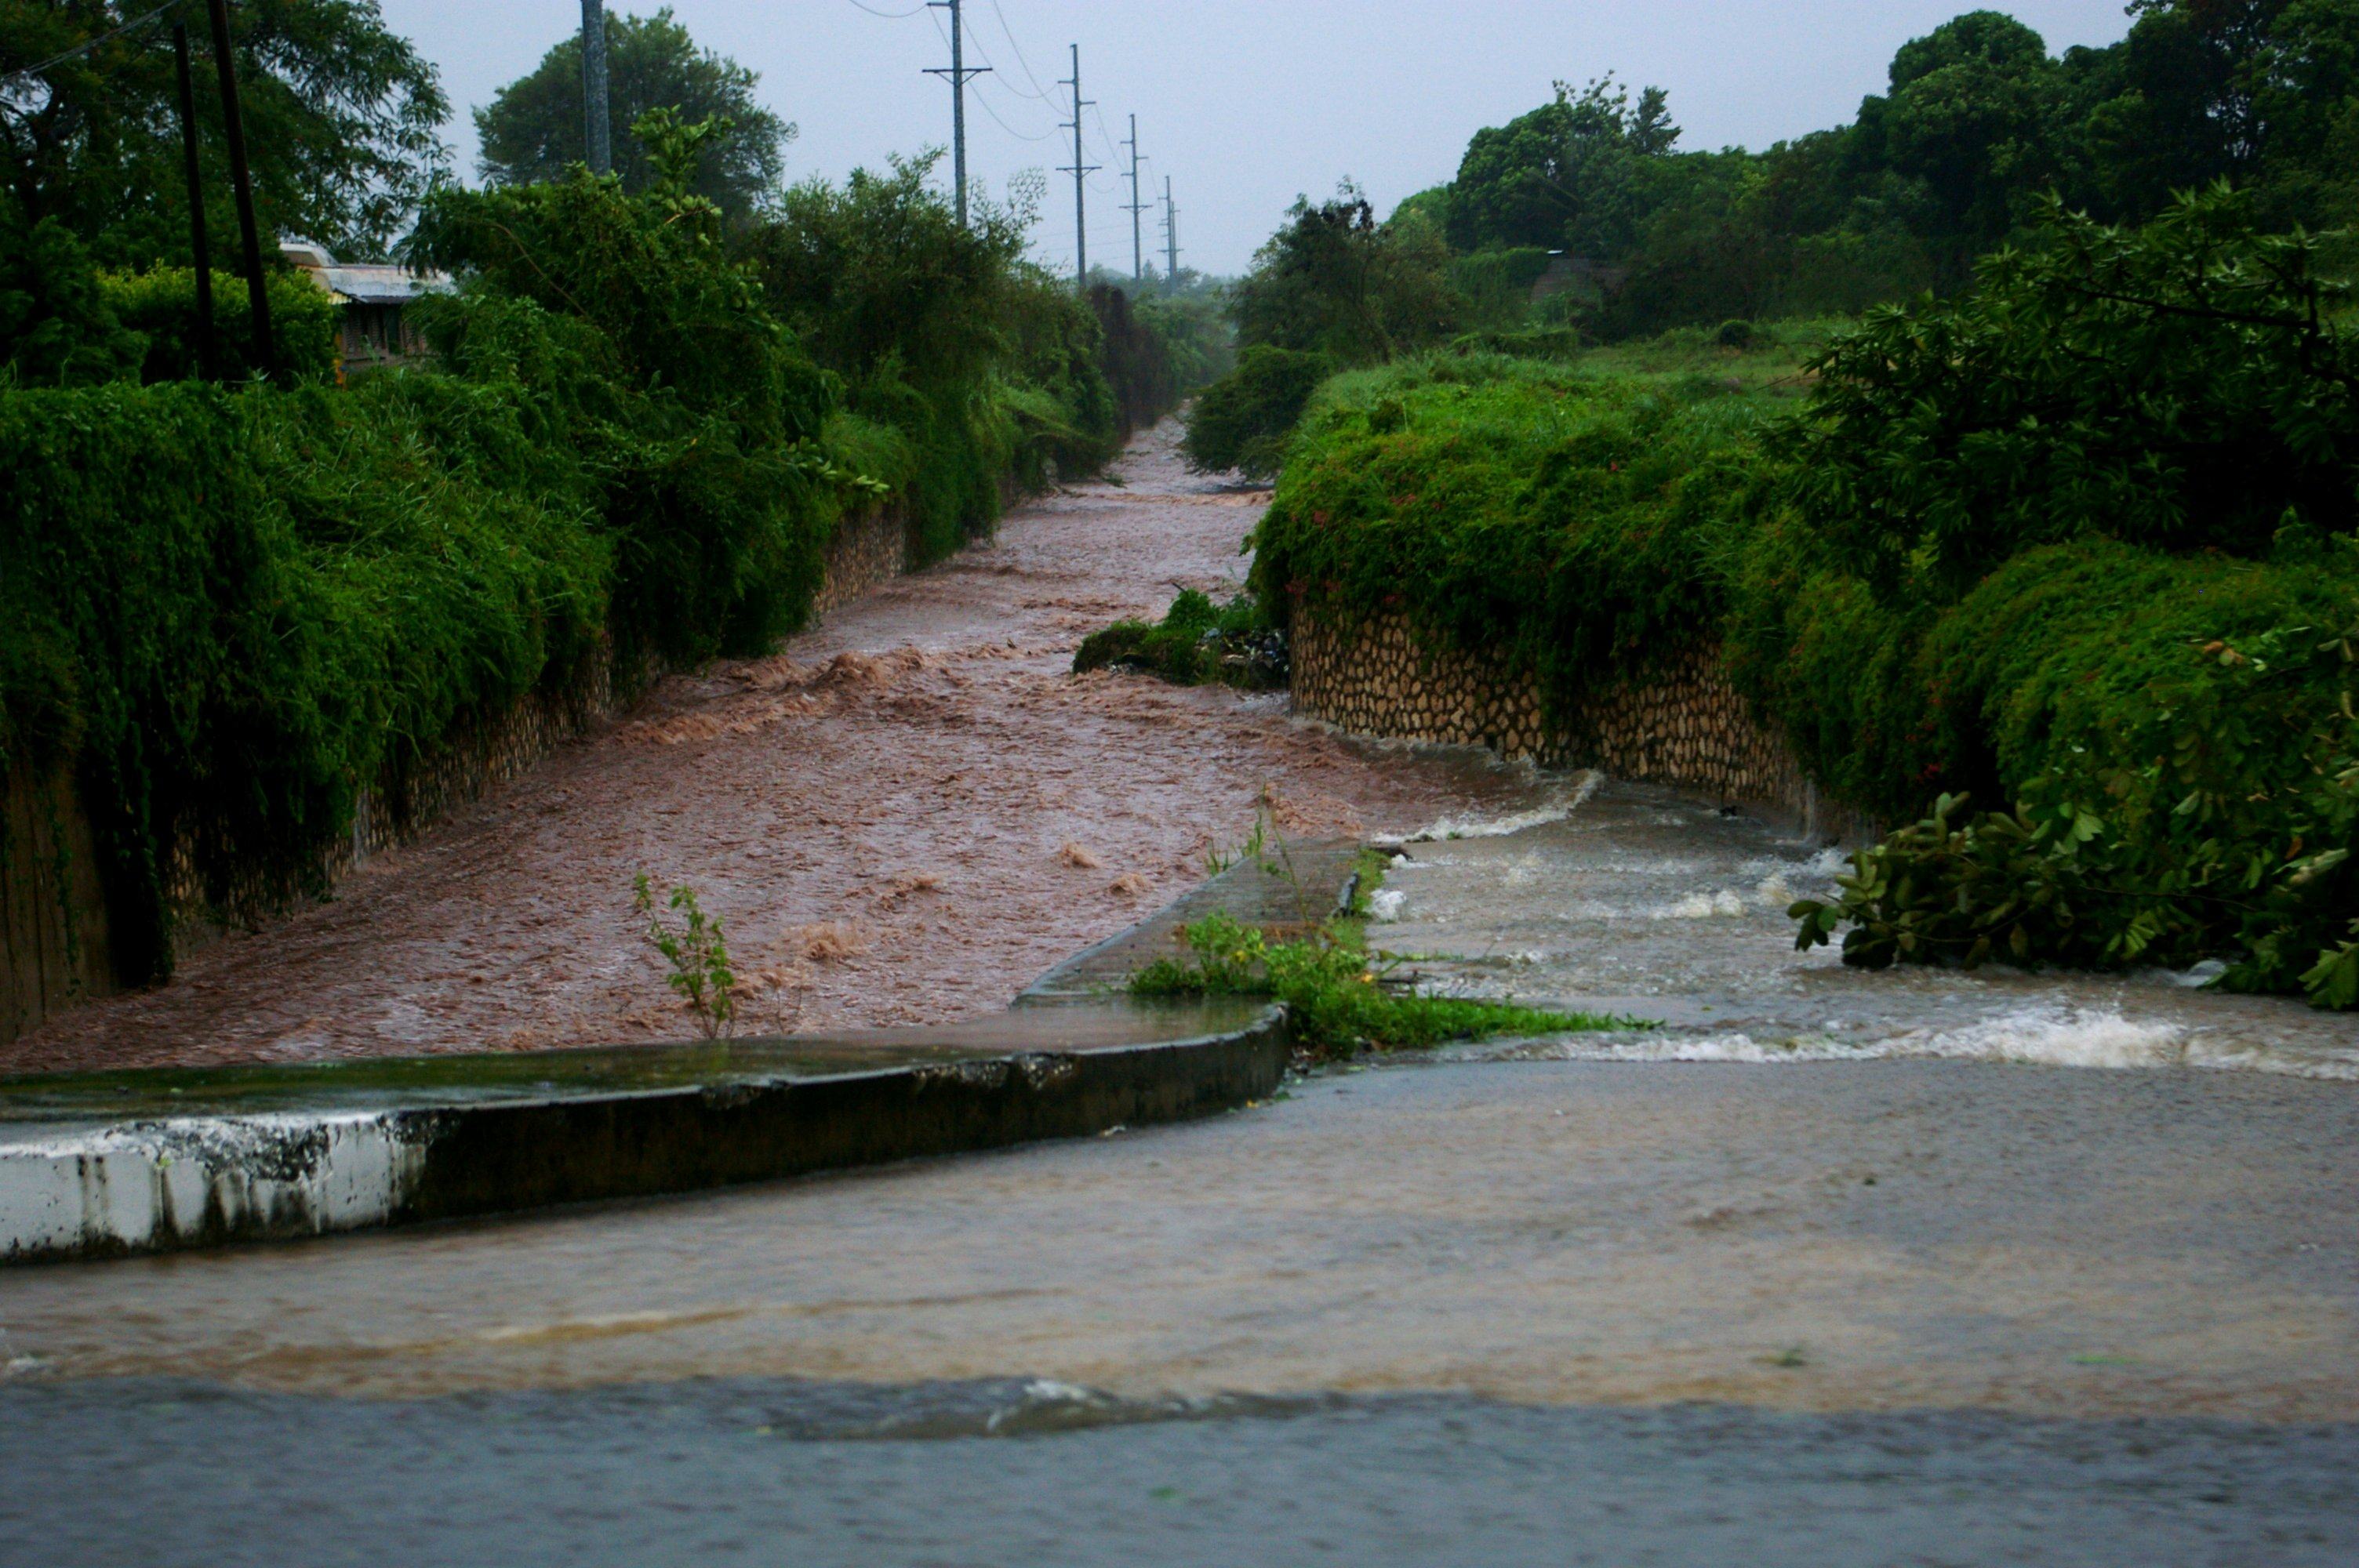 Conroe Tx Flooding >> File:Flooded road in Kingston during Hurricane Dean.jpg - Wikimedia Commons